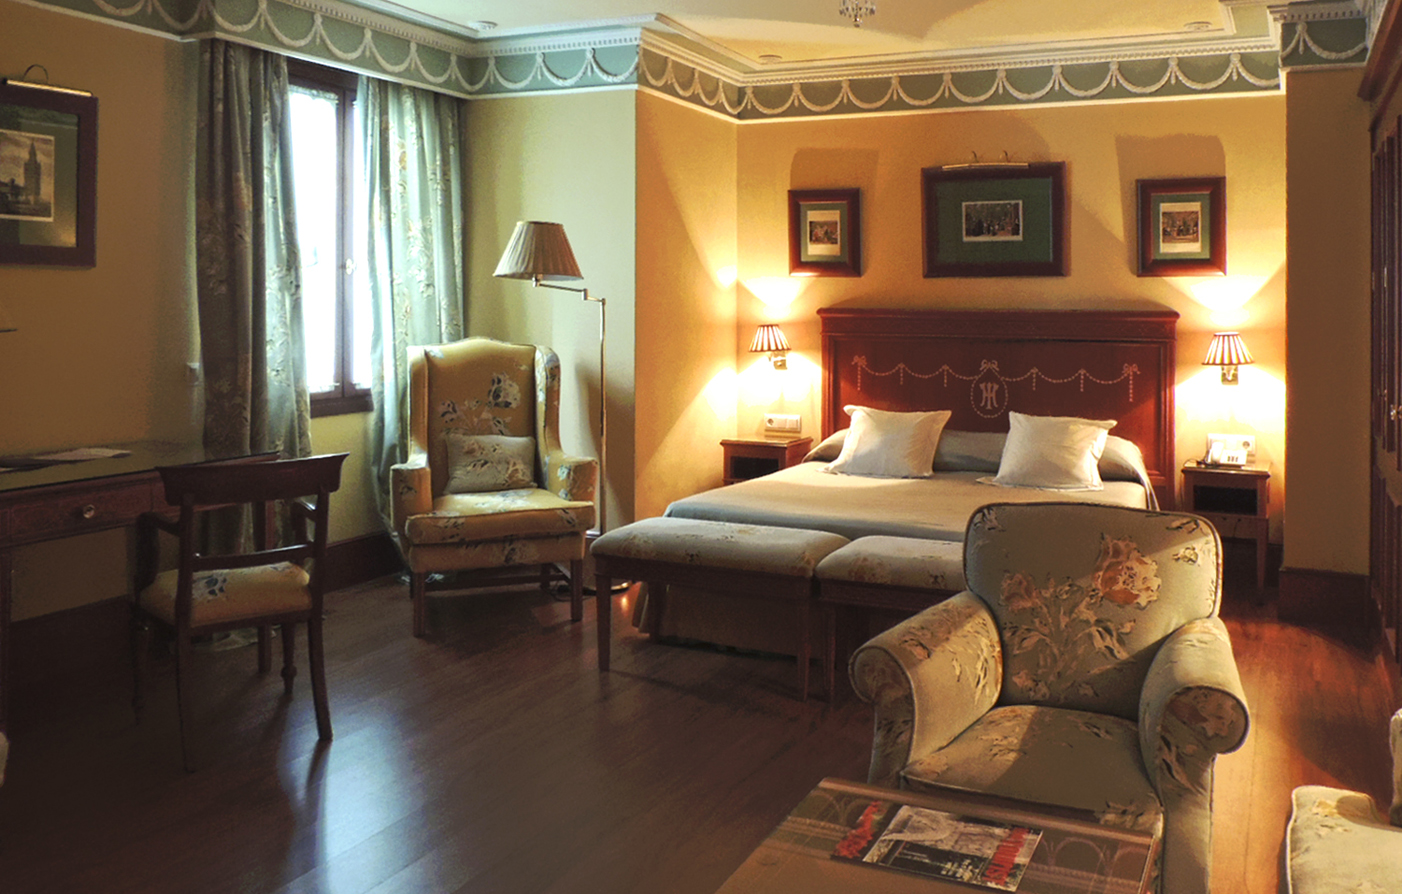 Accommodations:      Hotel Inglaterra  in Seville